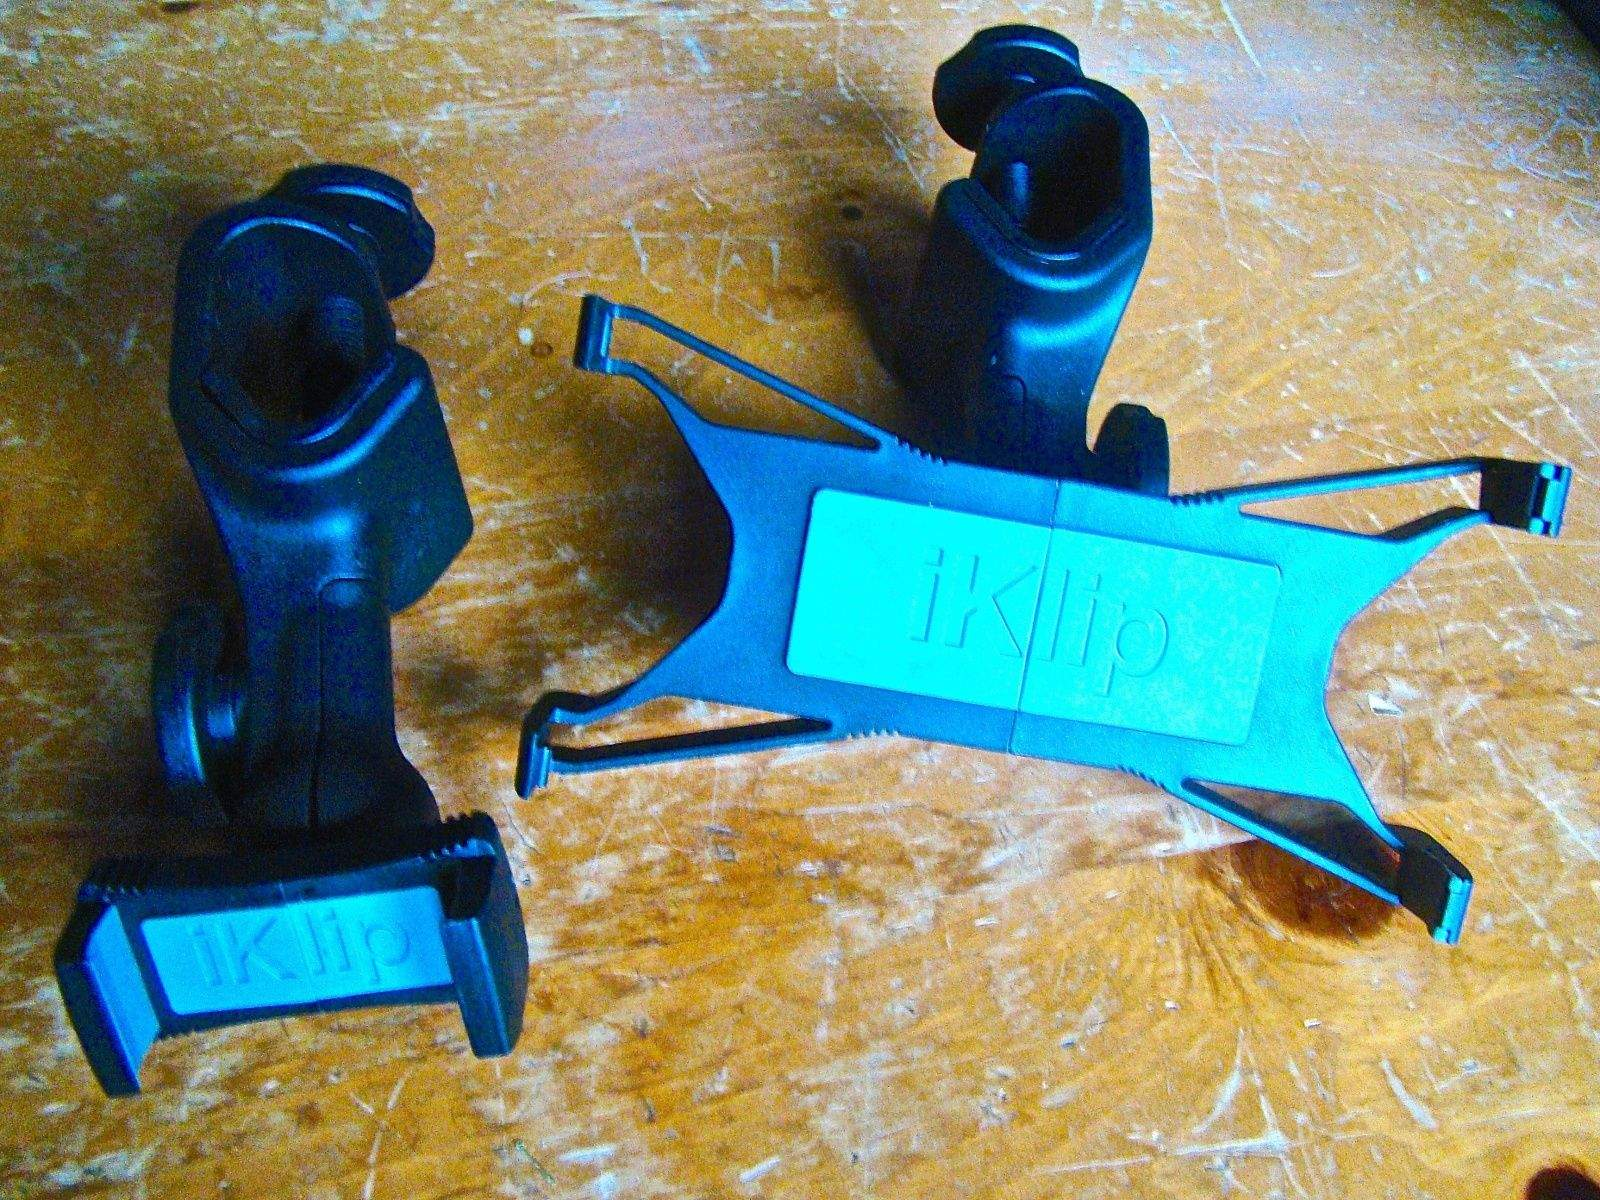 For rockers, iKlip XPand universal mic clips are essential kit